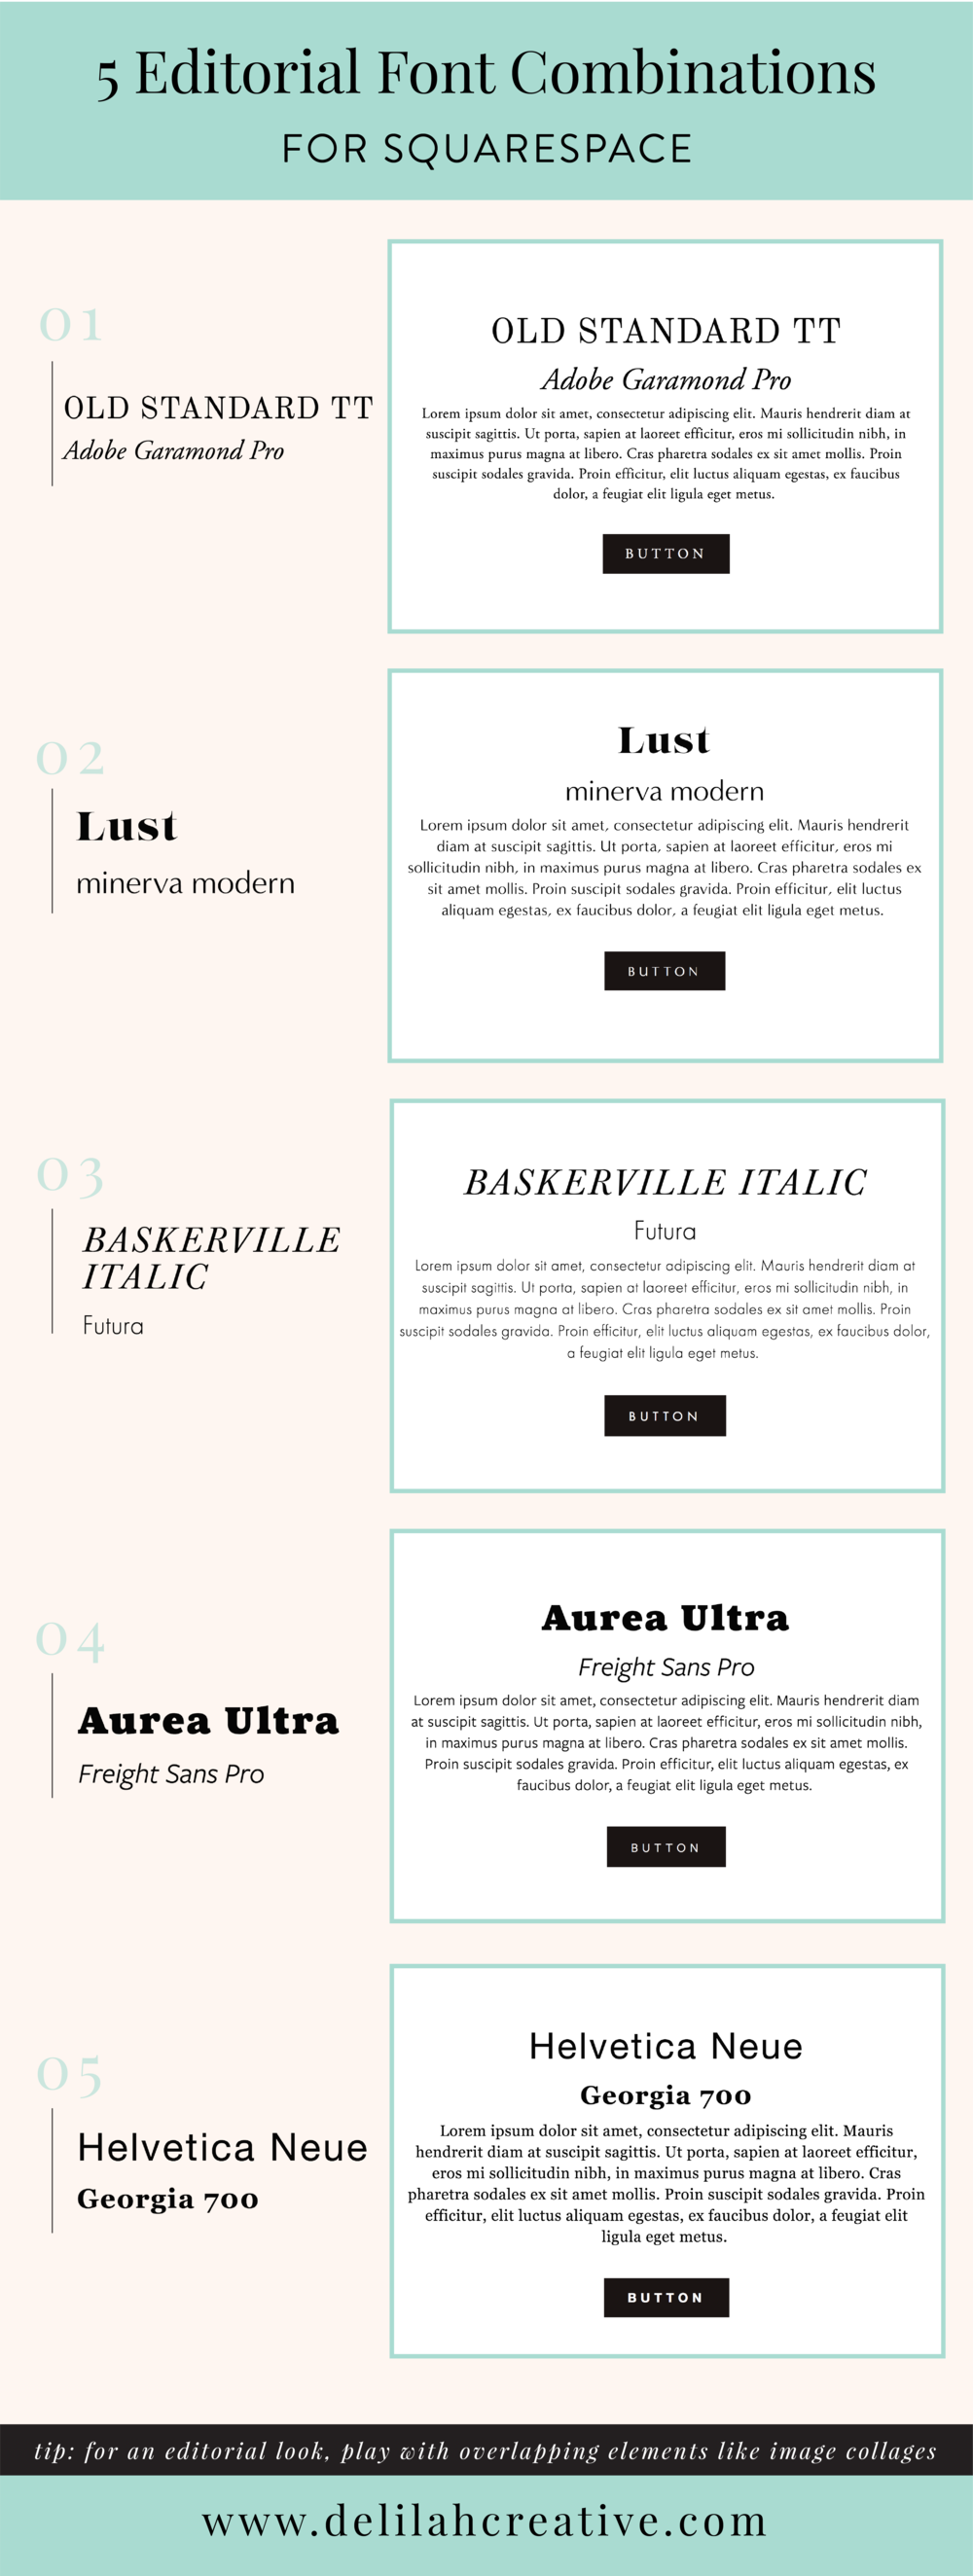 squarespace-editorial-font-combinations